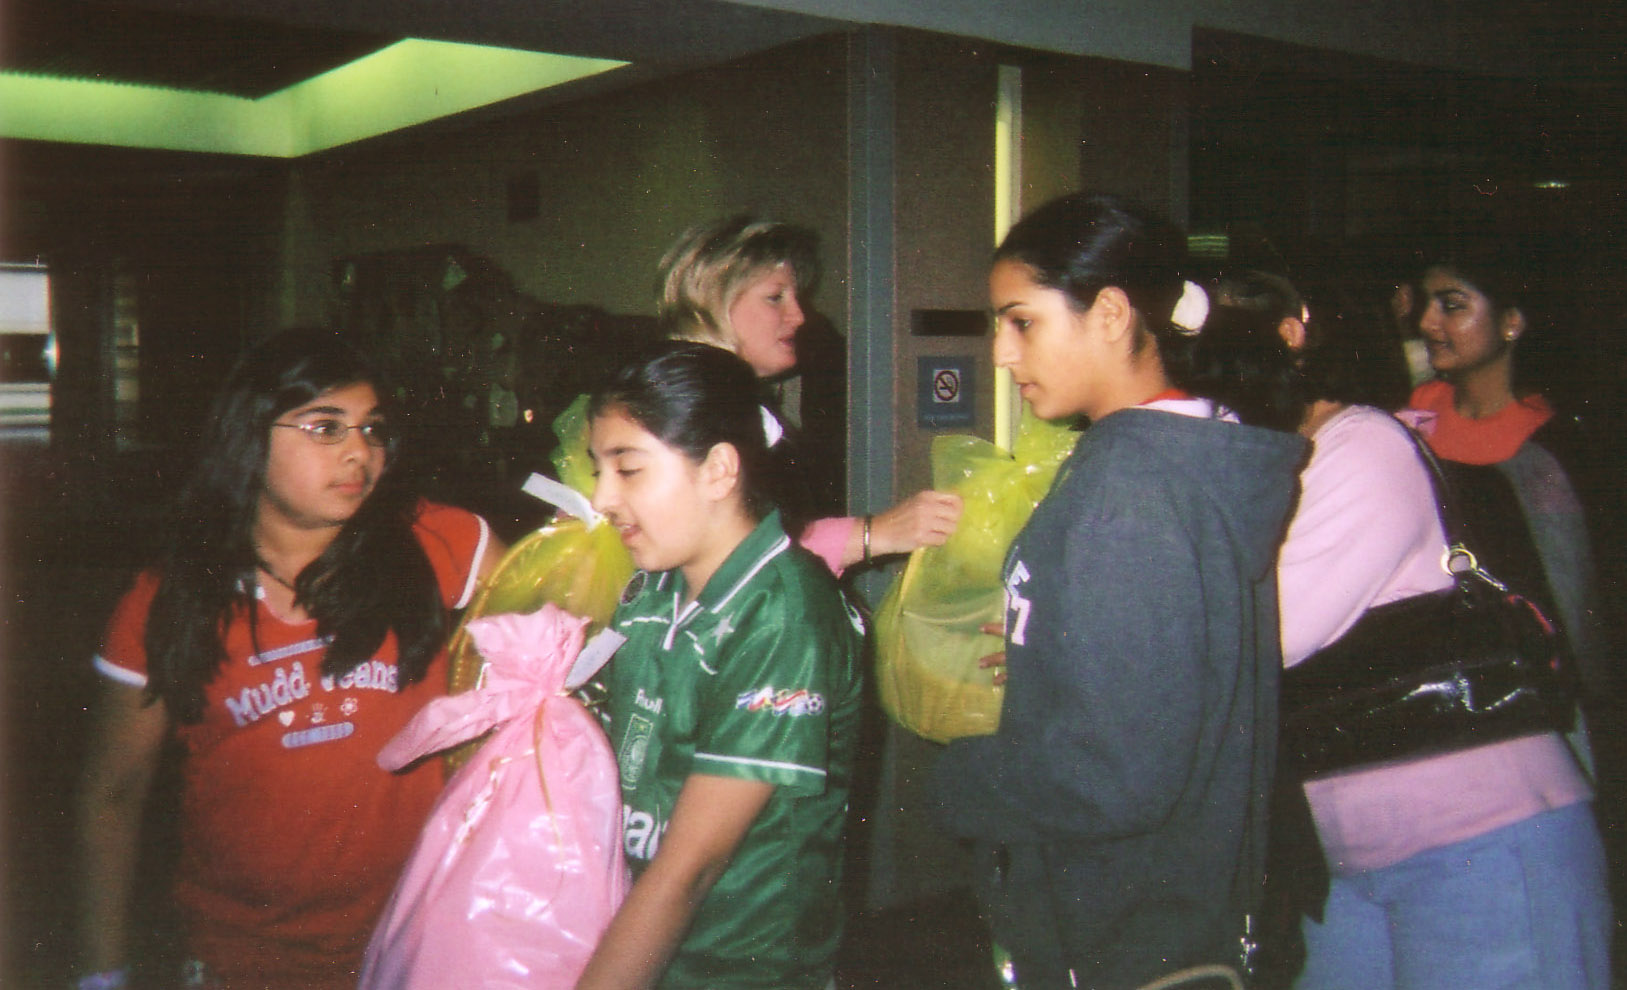 youth_giving_baskets_at_inova_hospital.jpg